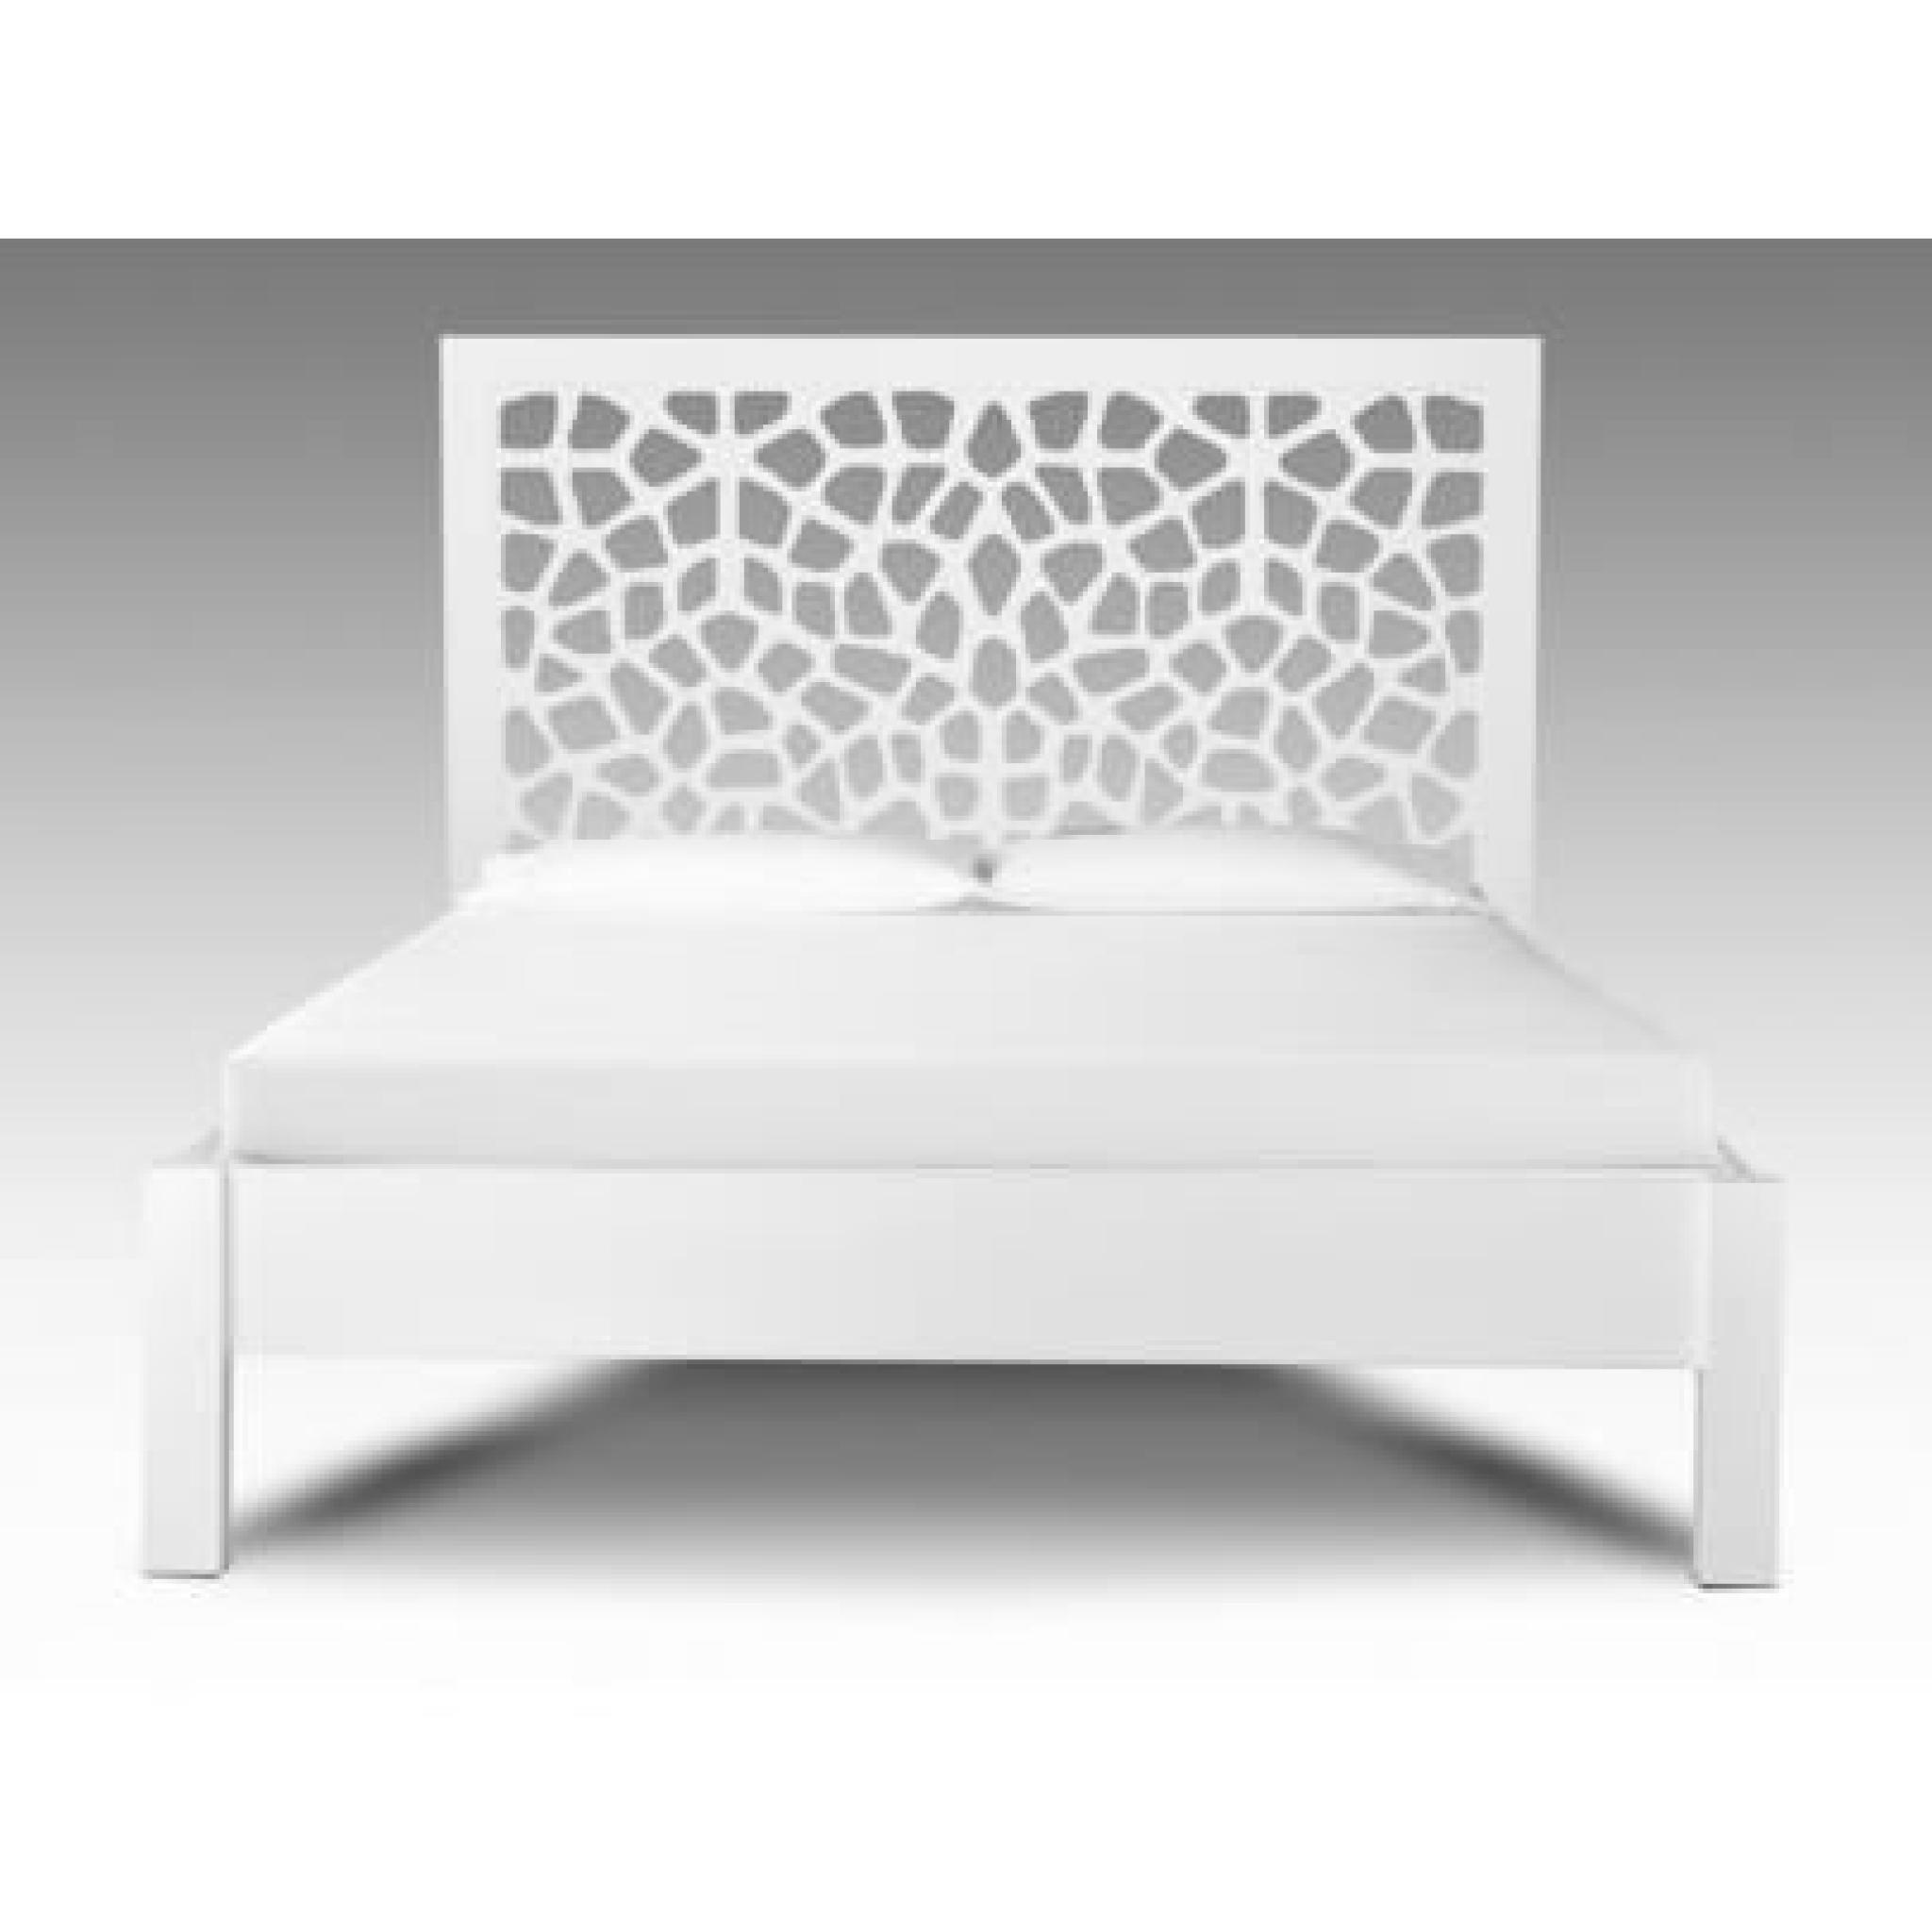 lit dolly 160x200cm bois mdf laqu blanc achat. Black Bedroom Furniture Sets. Home Design Ideas